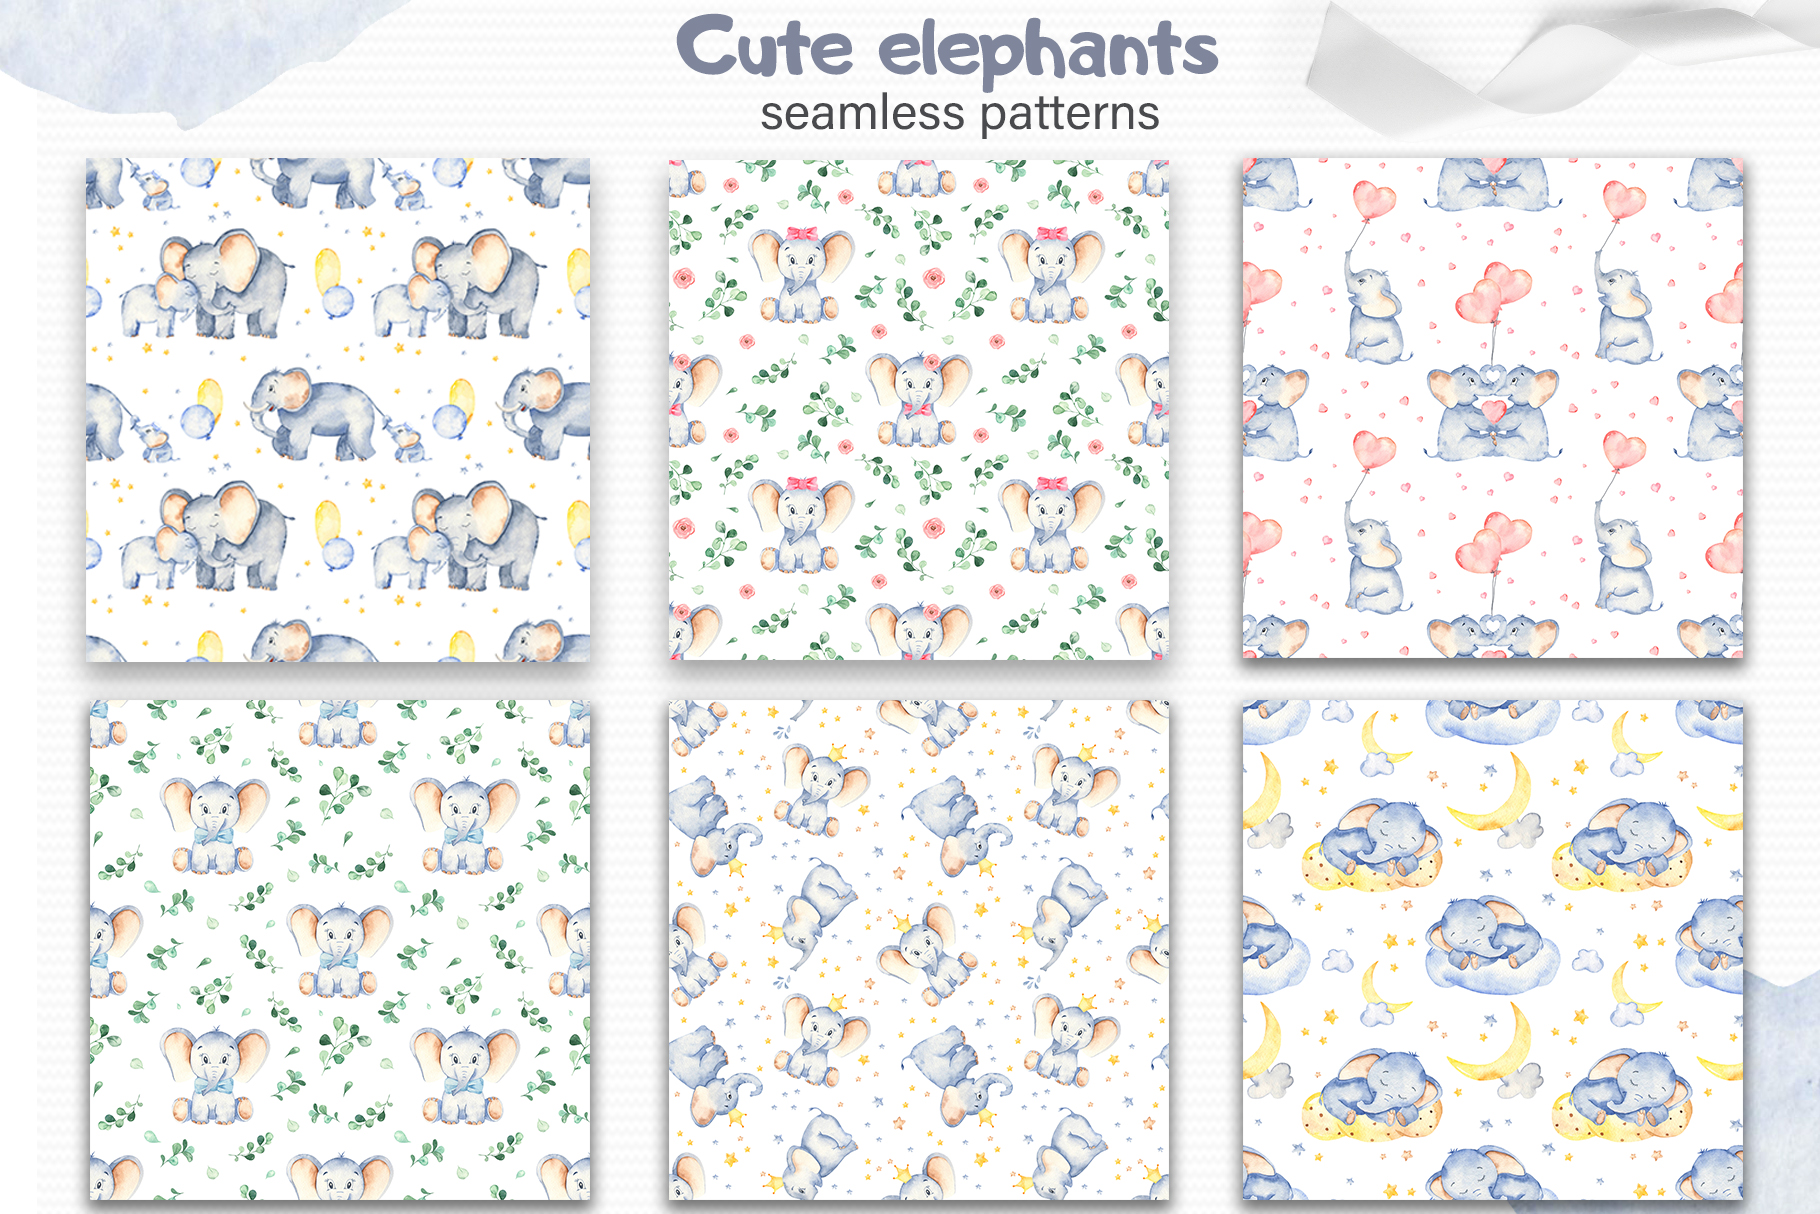 Cute elephants watercolor collection clipart example image 7